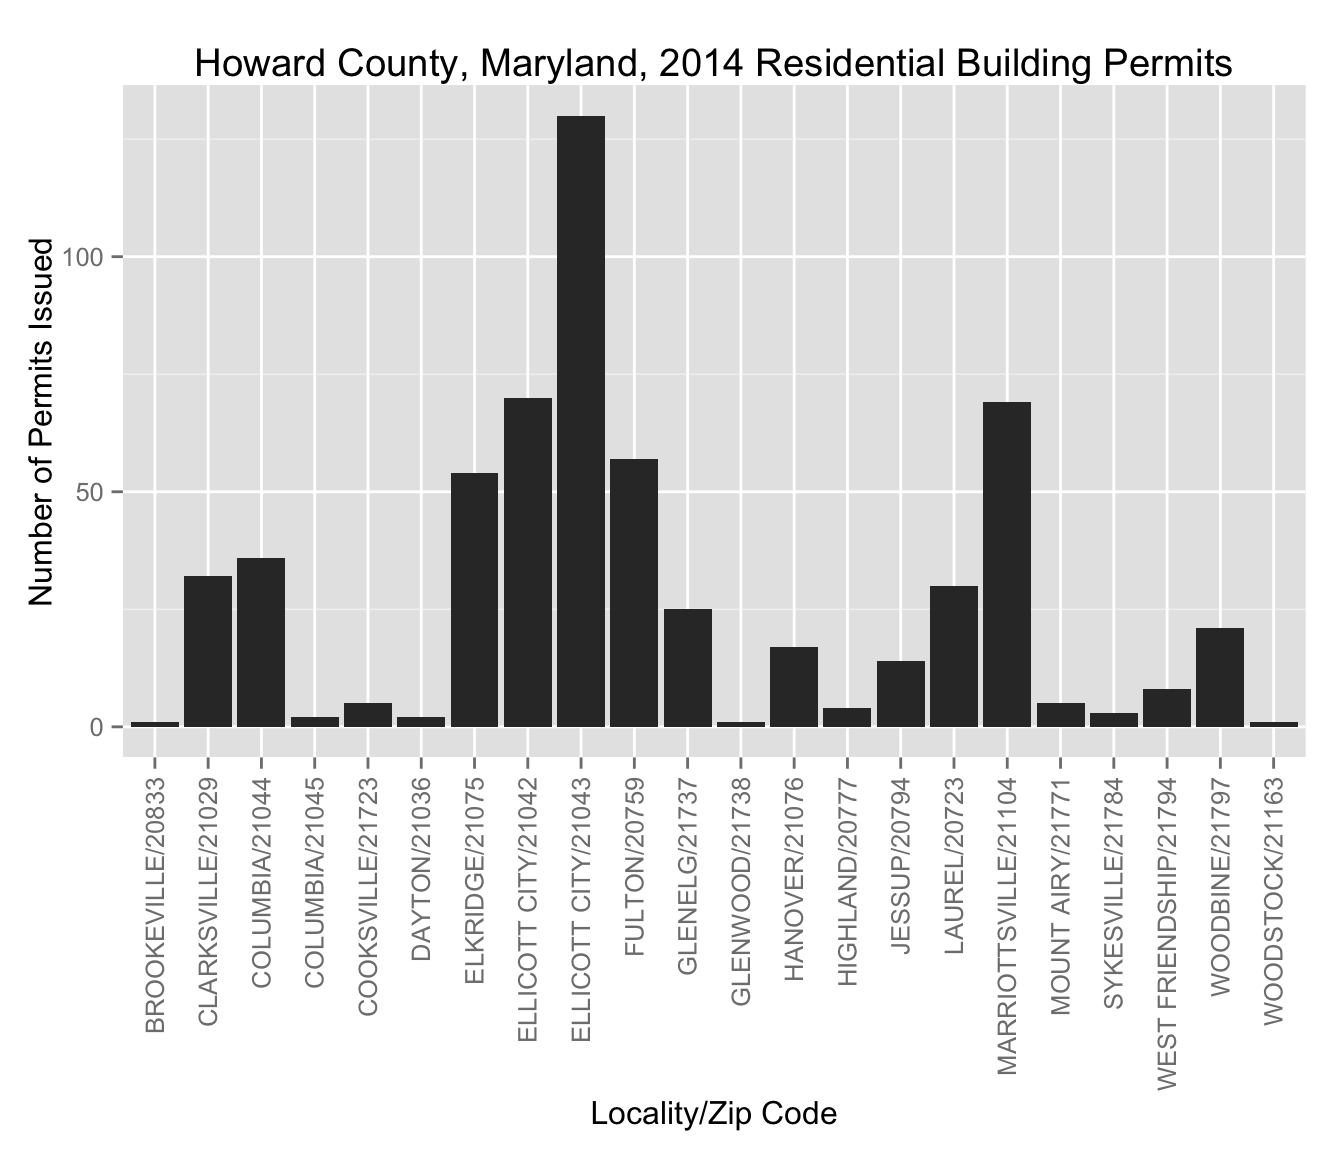 Fun with howard county building permit data civility and truth bar chart showing howard county residential building permits per zip code solutioingenieria Image collections